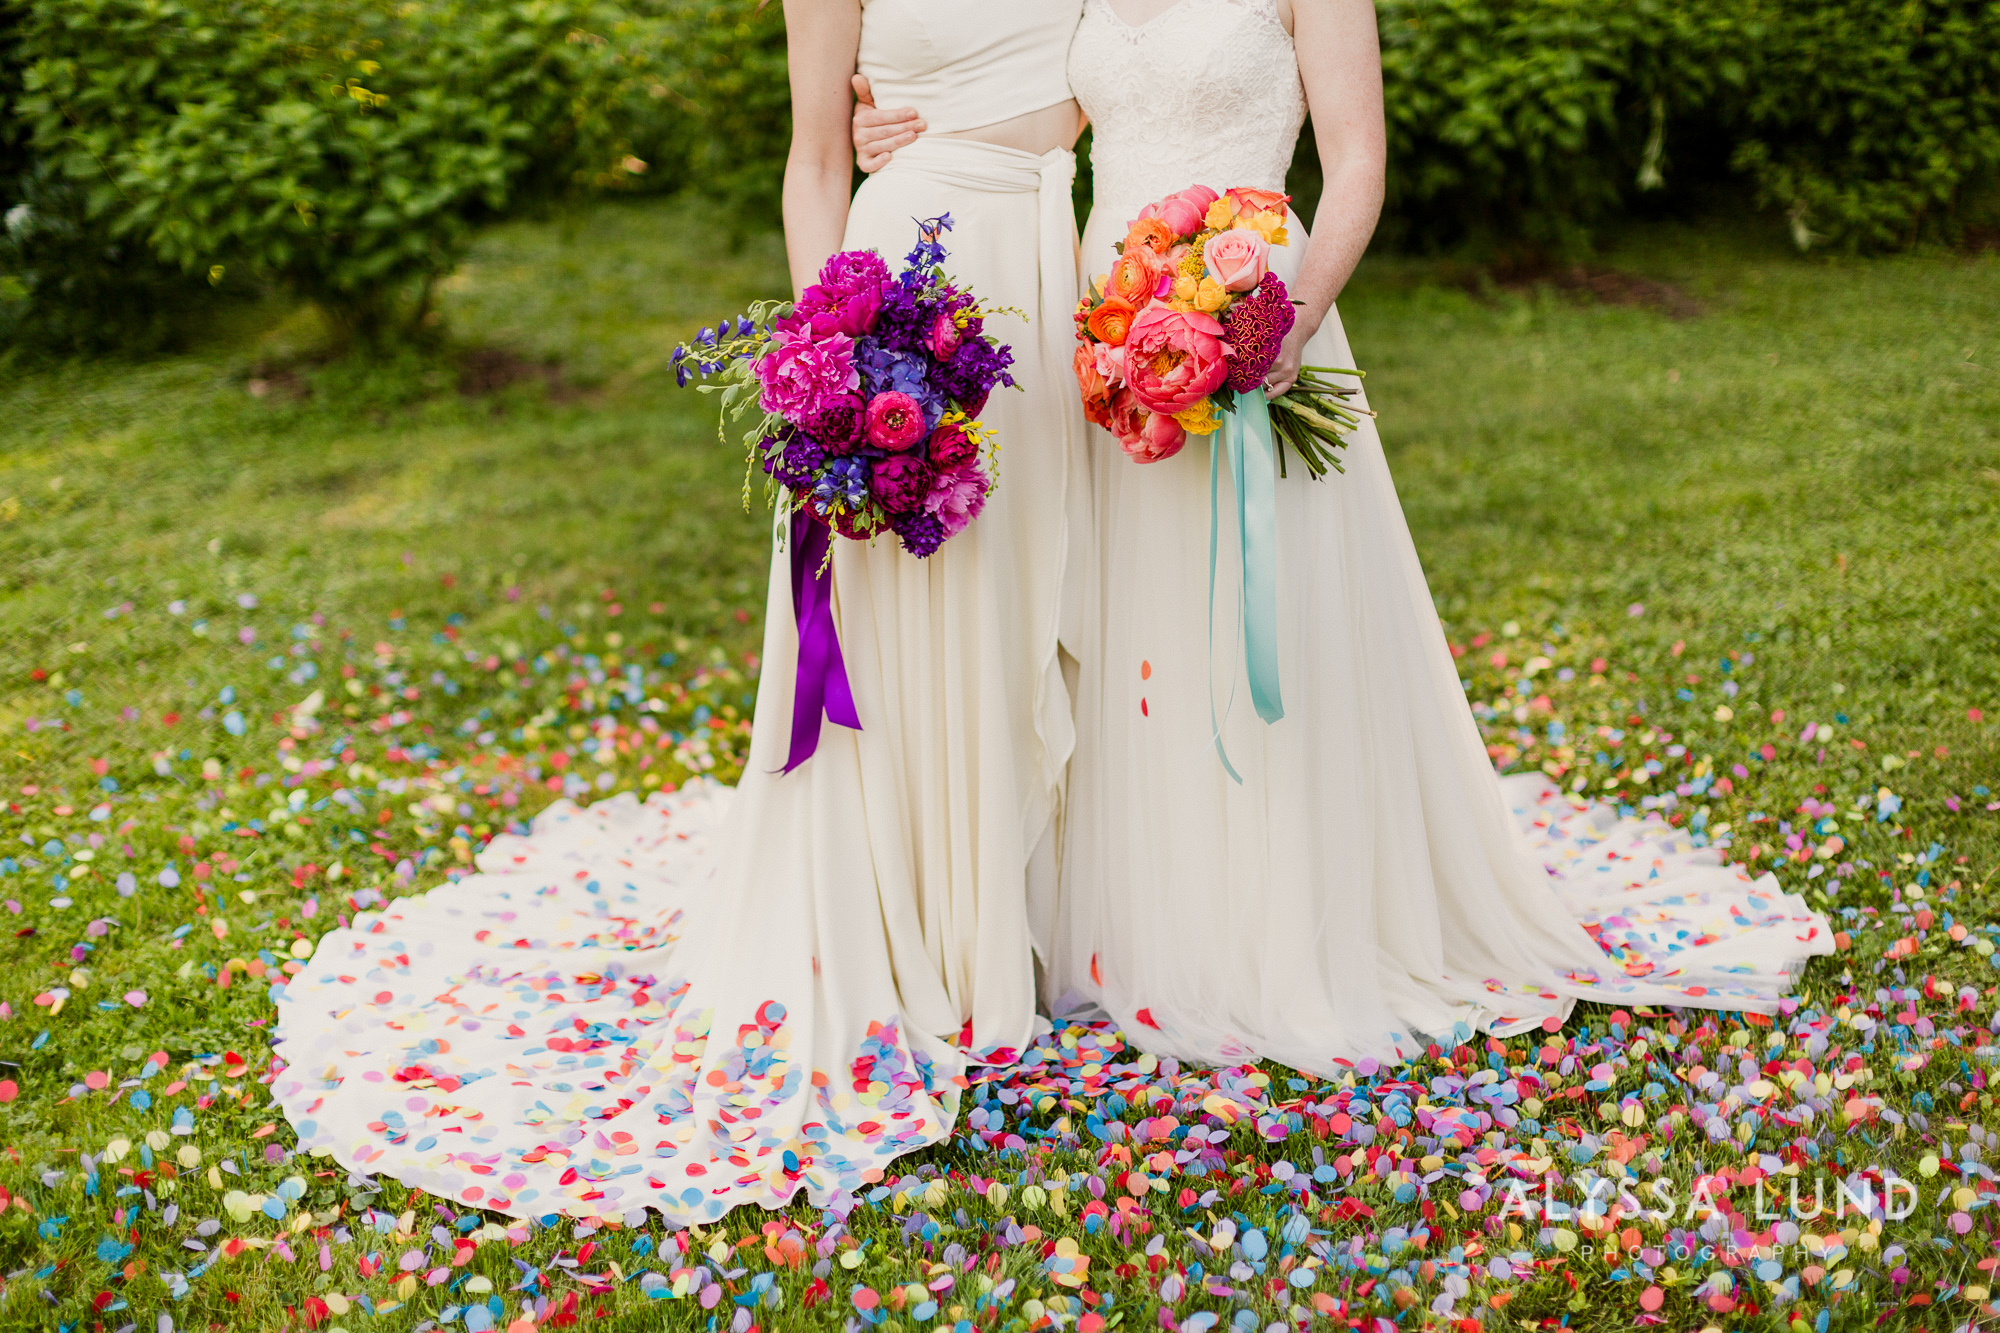 Queer wedding photography inspiration by Alyssa Lund Photography-20.jpg